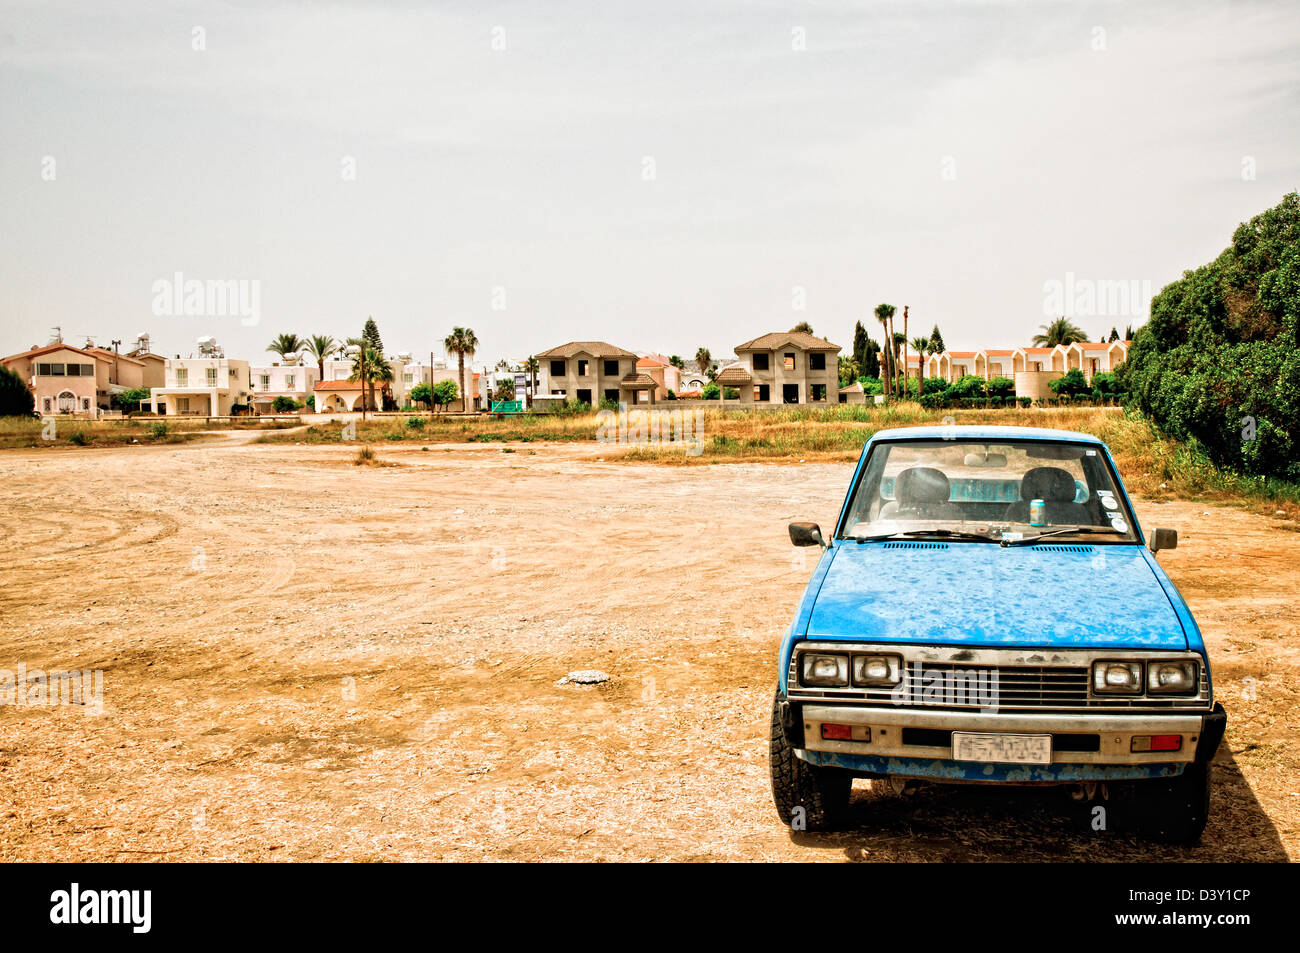 lone rusty car parked in a desolate scenery - Stock Image